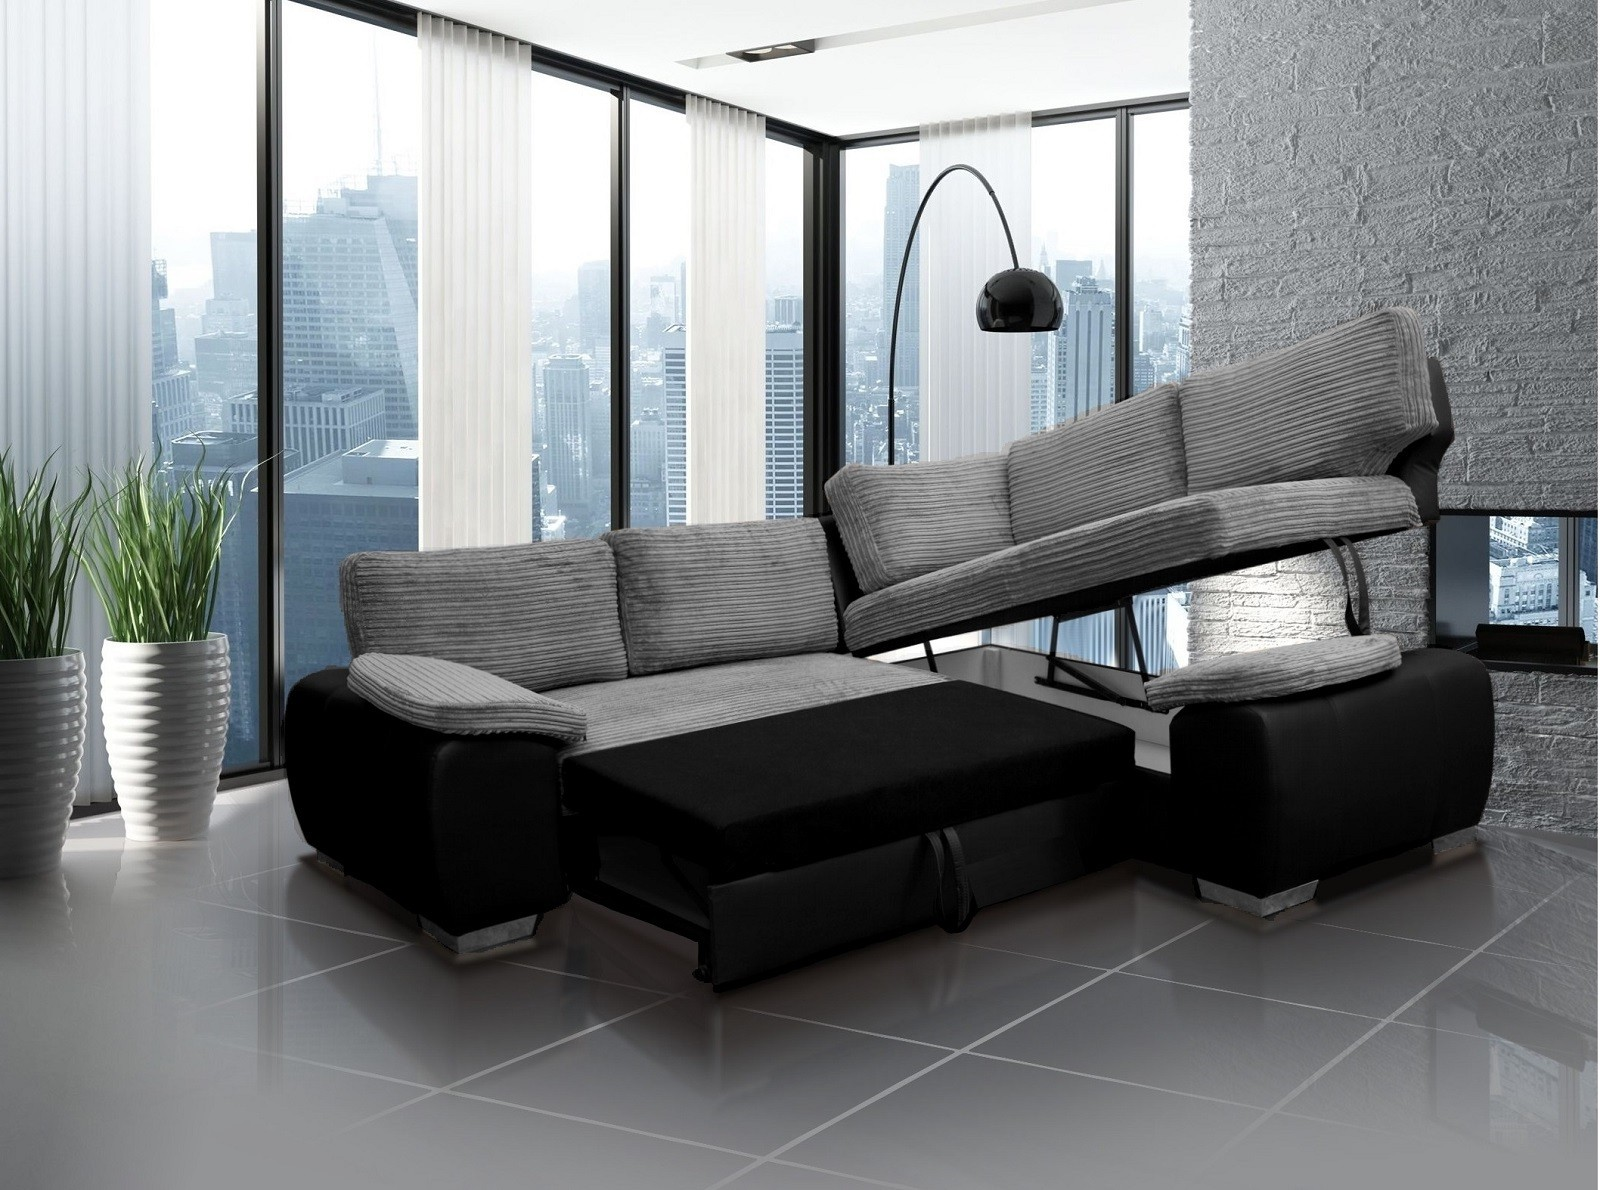 Madrid 2CR1 Right Corner Sofa Bed Black and Silver